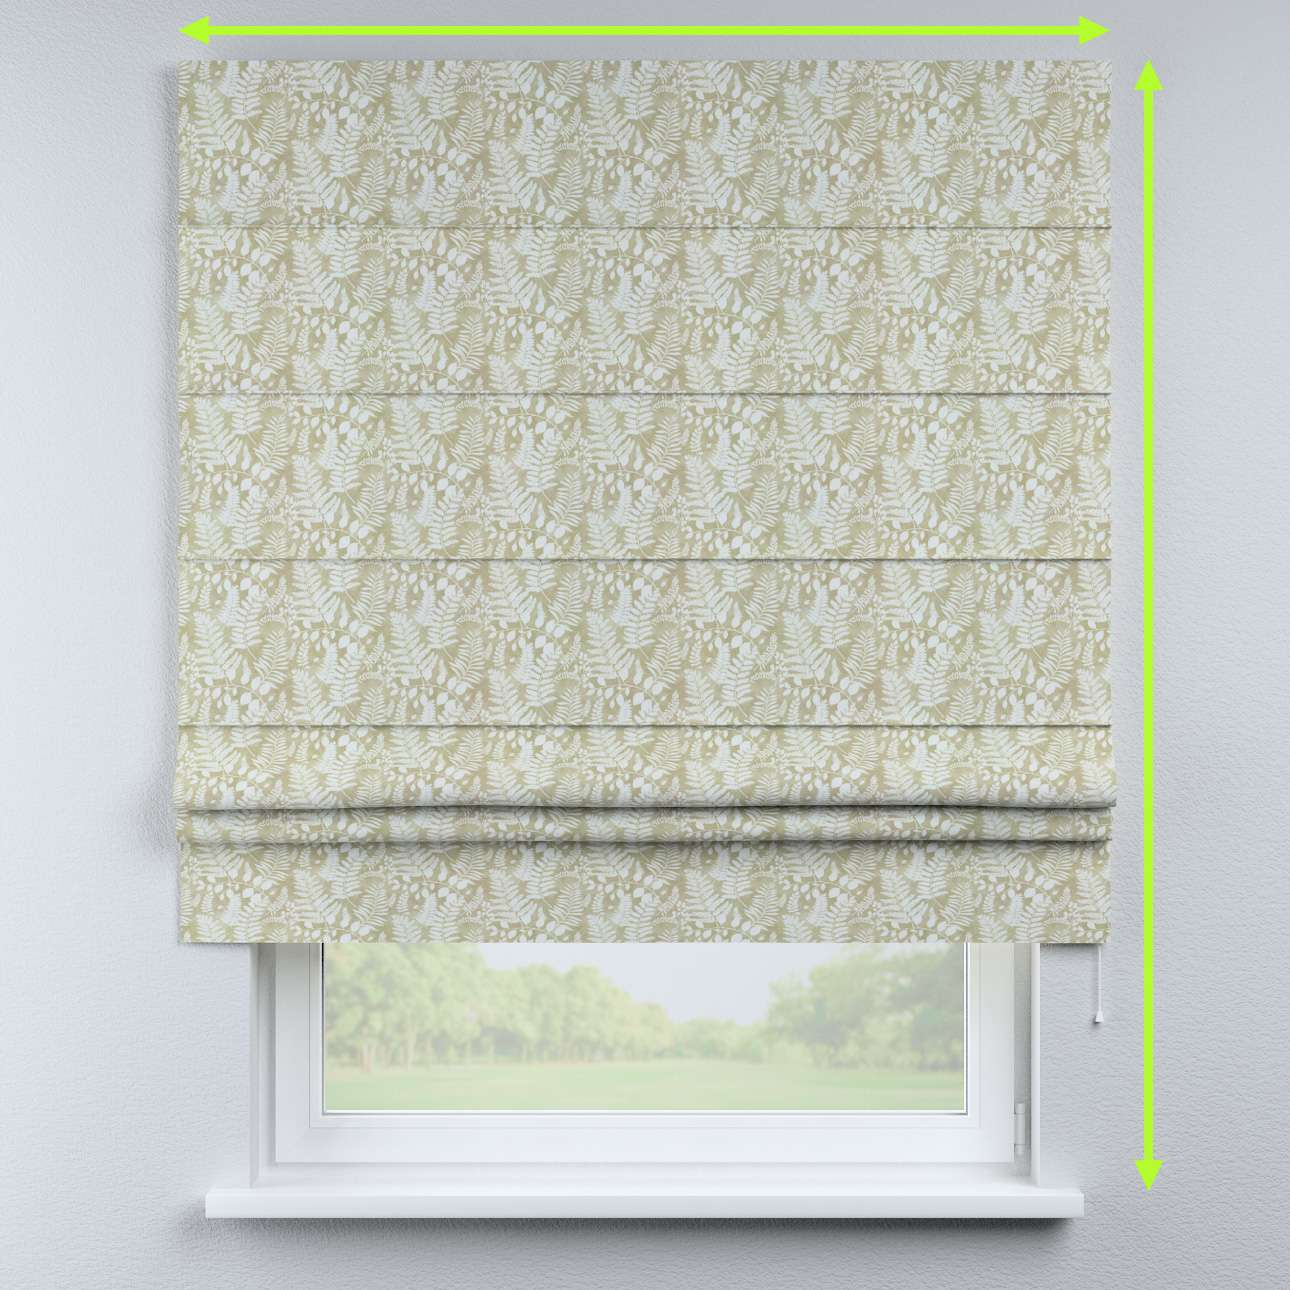 Padva roman blind in collection Pastel Forest, fabric: 142-50